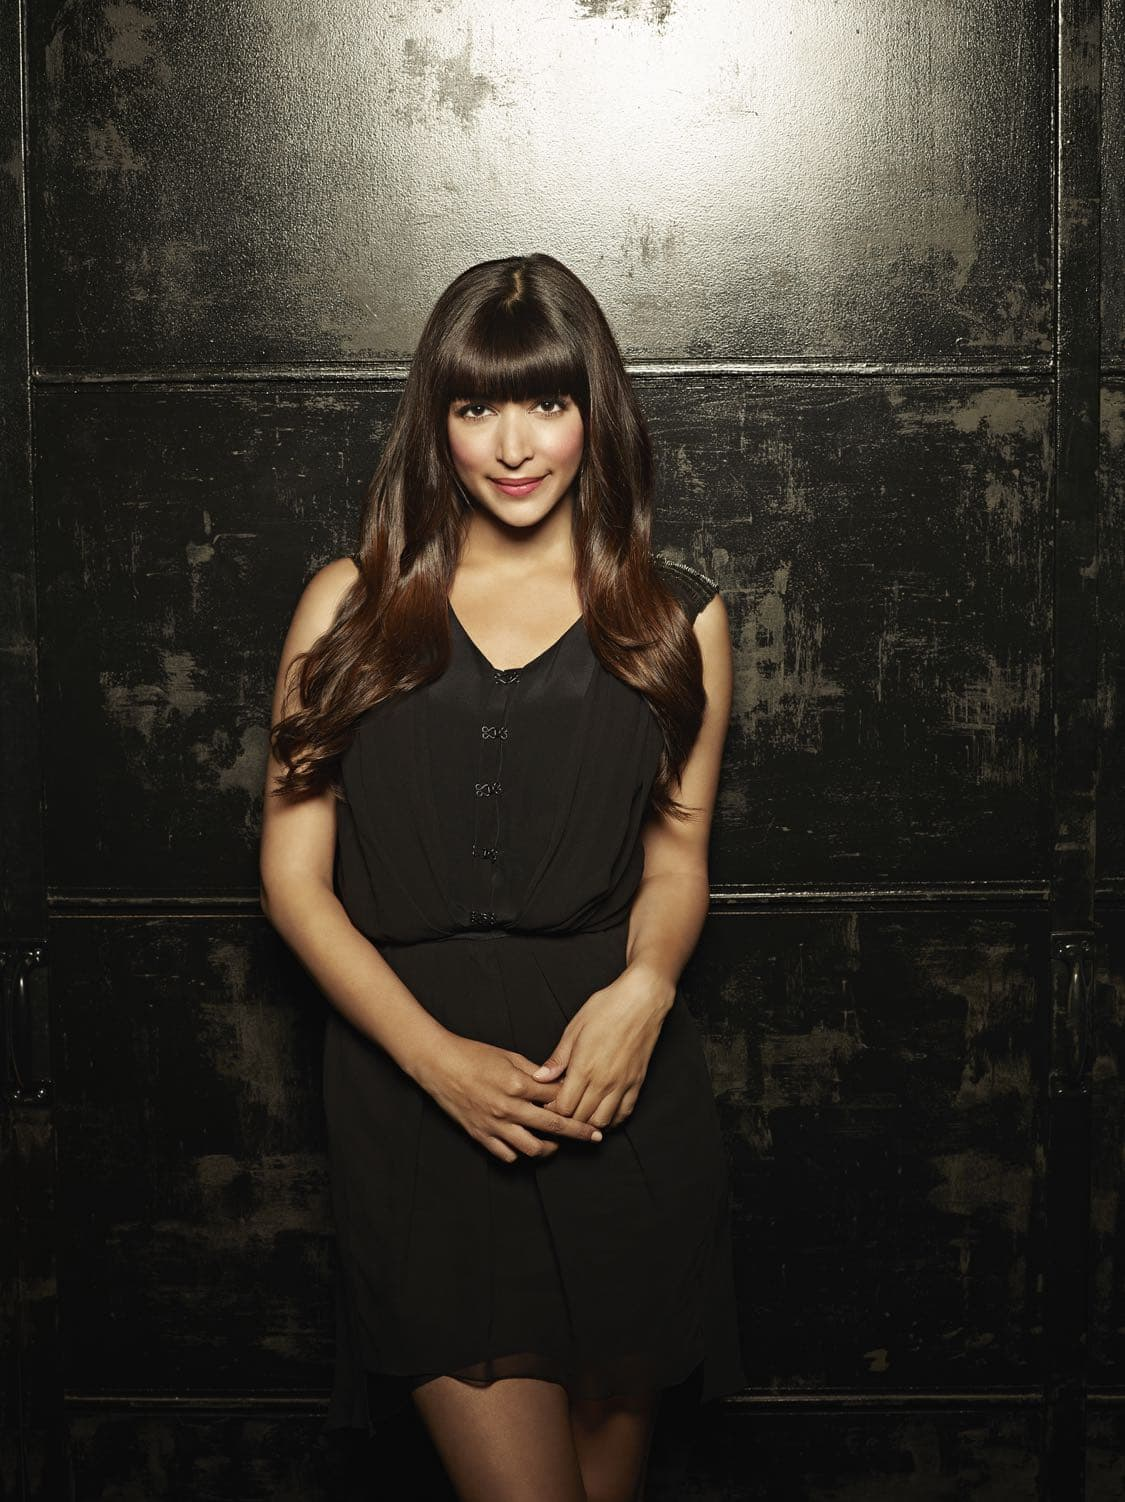 NEW GIRL: Hannah Simone returns as Cece. NEW GIRL premieres Tuesday, Sept. 20 (8:30-9:00 PM ET/PT) on FOX.